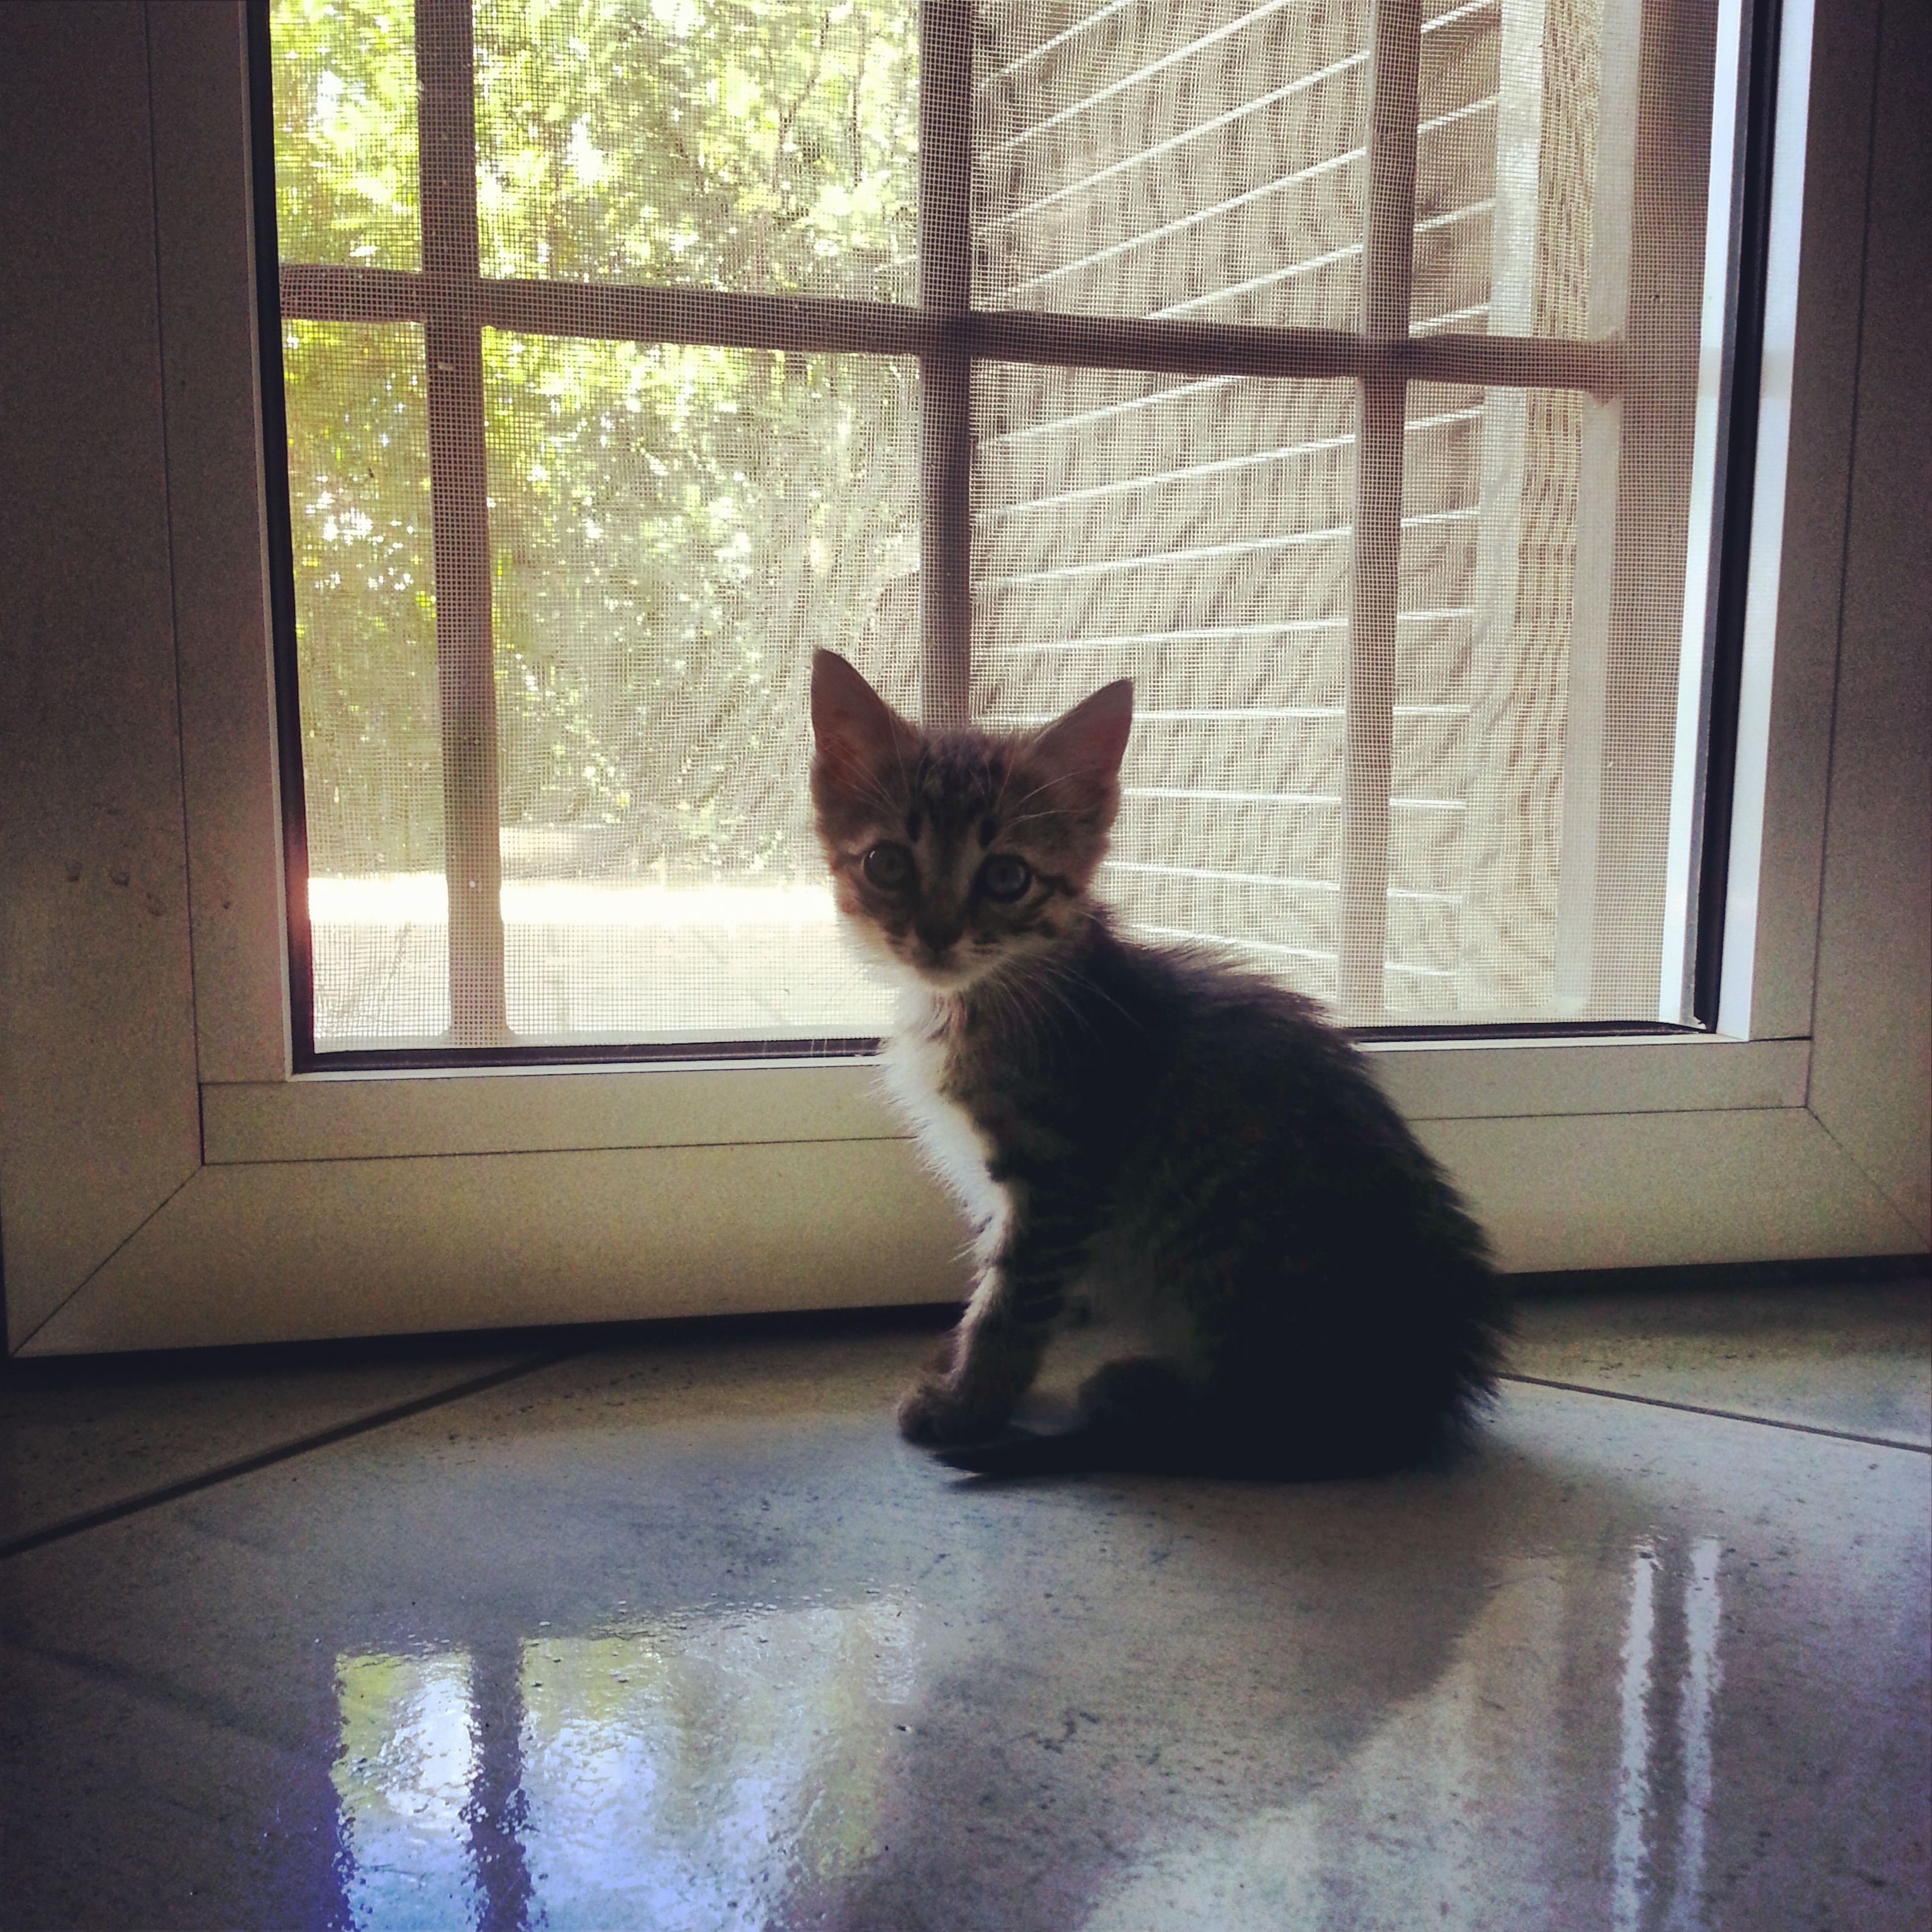 pets, domestic cat, domestic animals, cat, indoors, one animal, animal themes, mammal, window, feline, window sill, home interior, sitting, glass - material, whisker, transparent, relaxation, looking through window, curtain, house